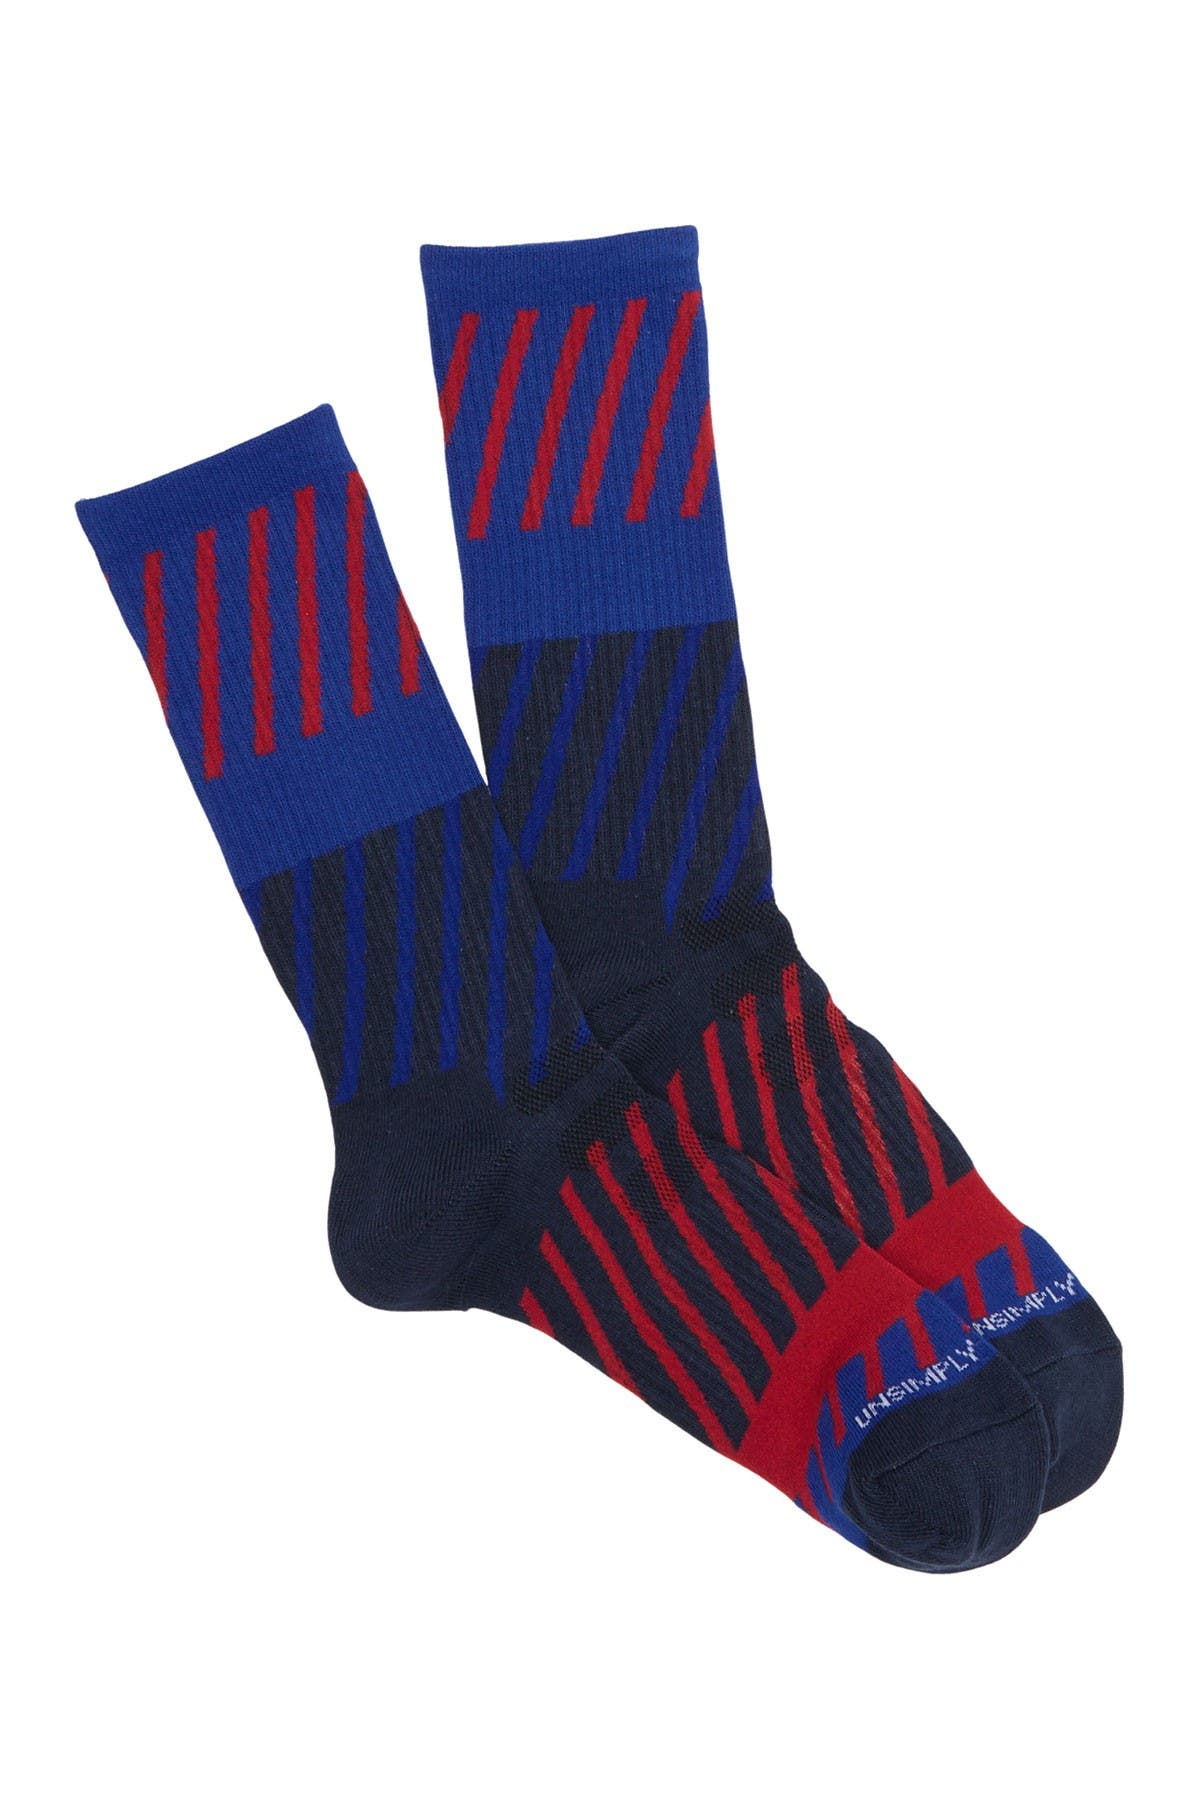 Image of Unsimply Stitched Diagonal Wave Athletic Crew Socks